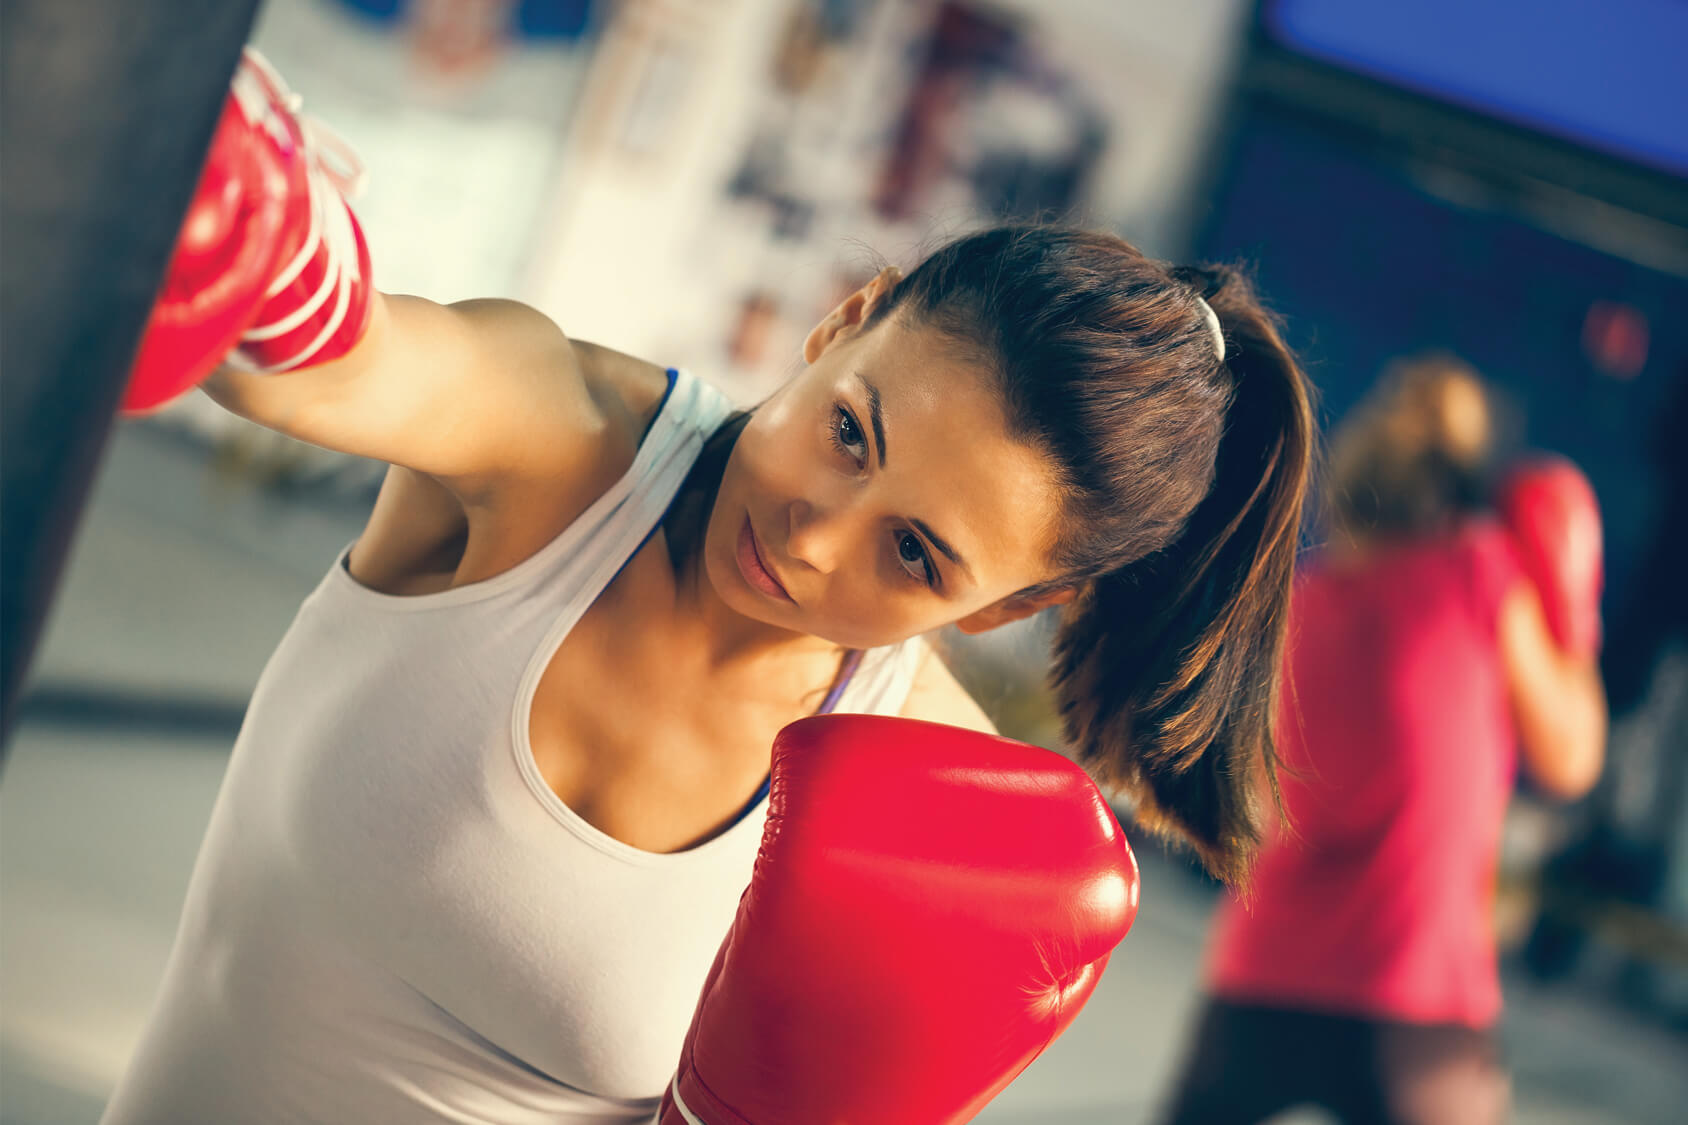 Clinicas Persona - Flacidez - Boxe